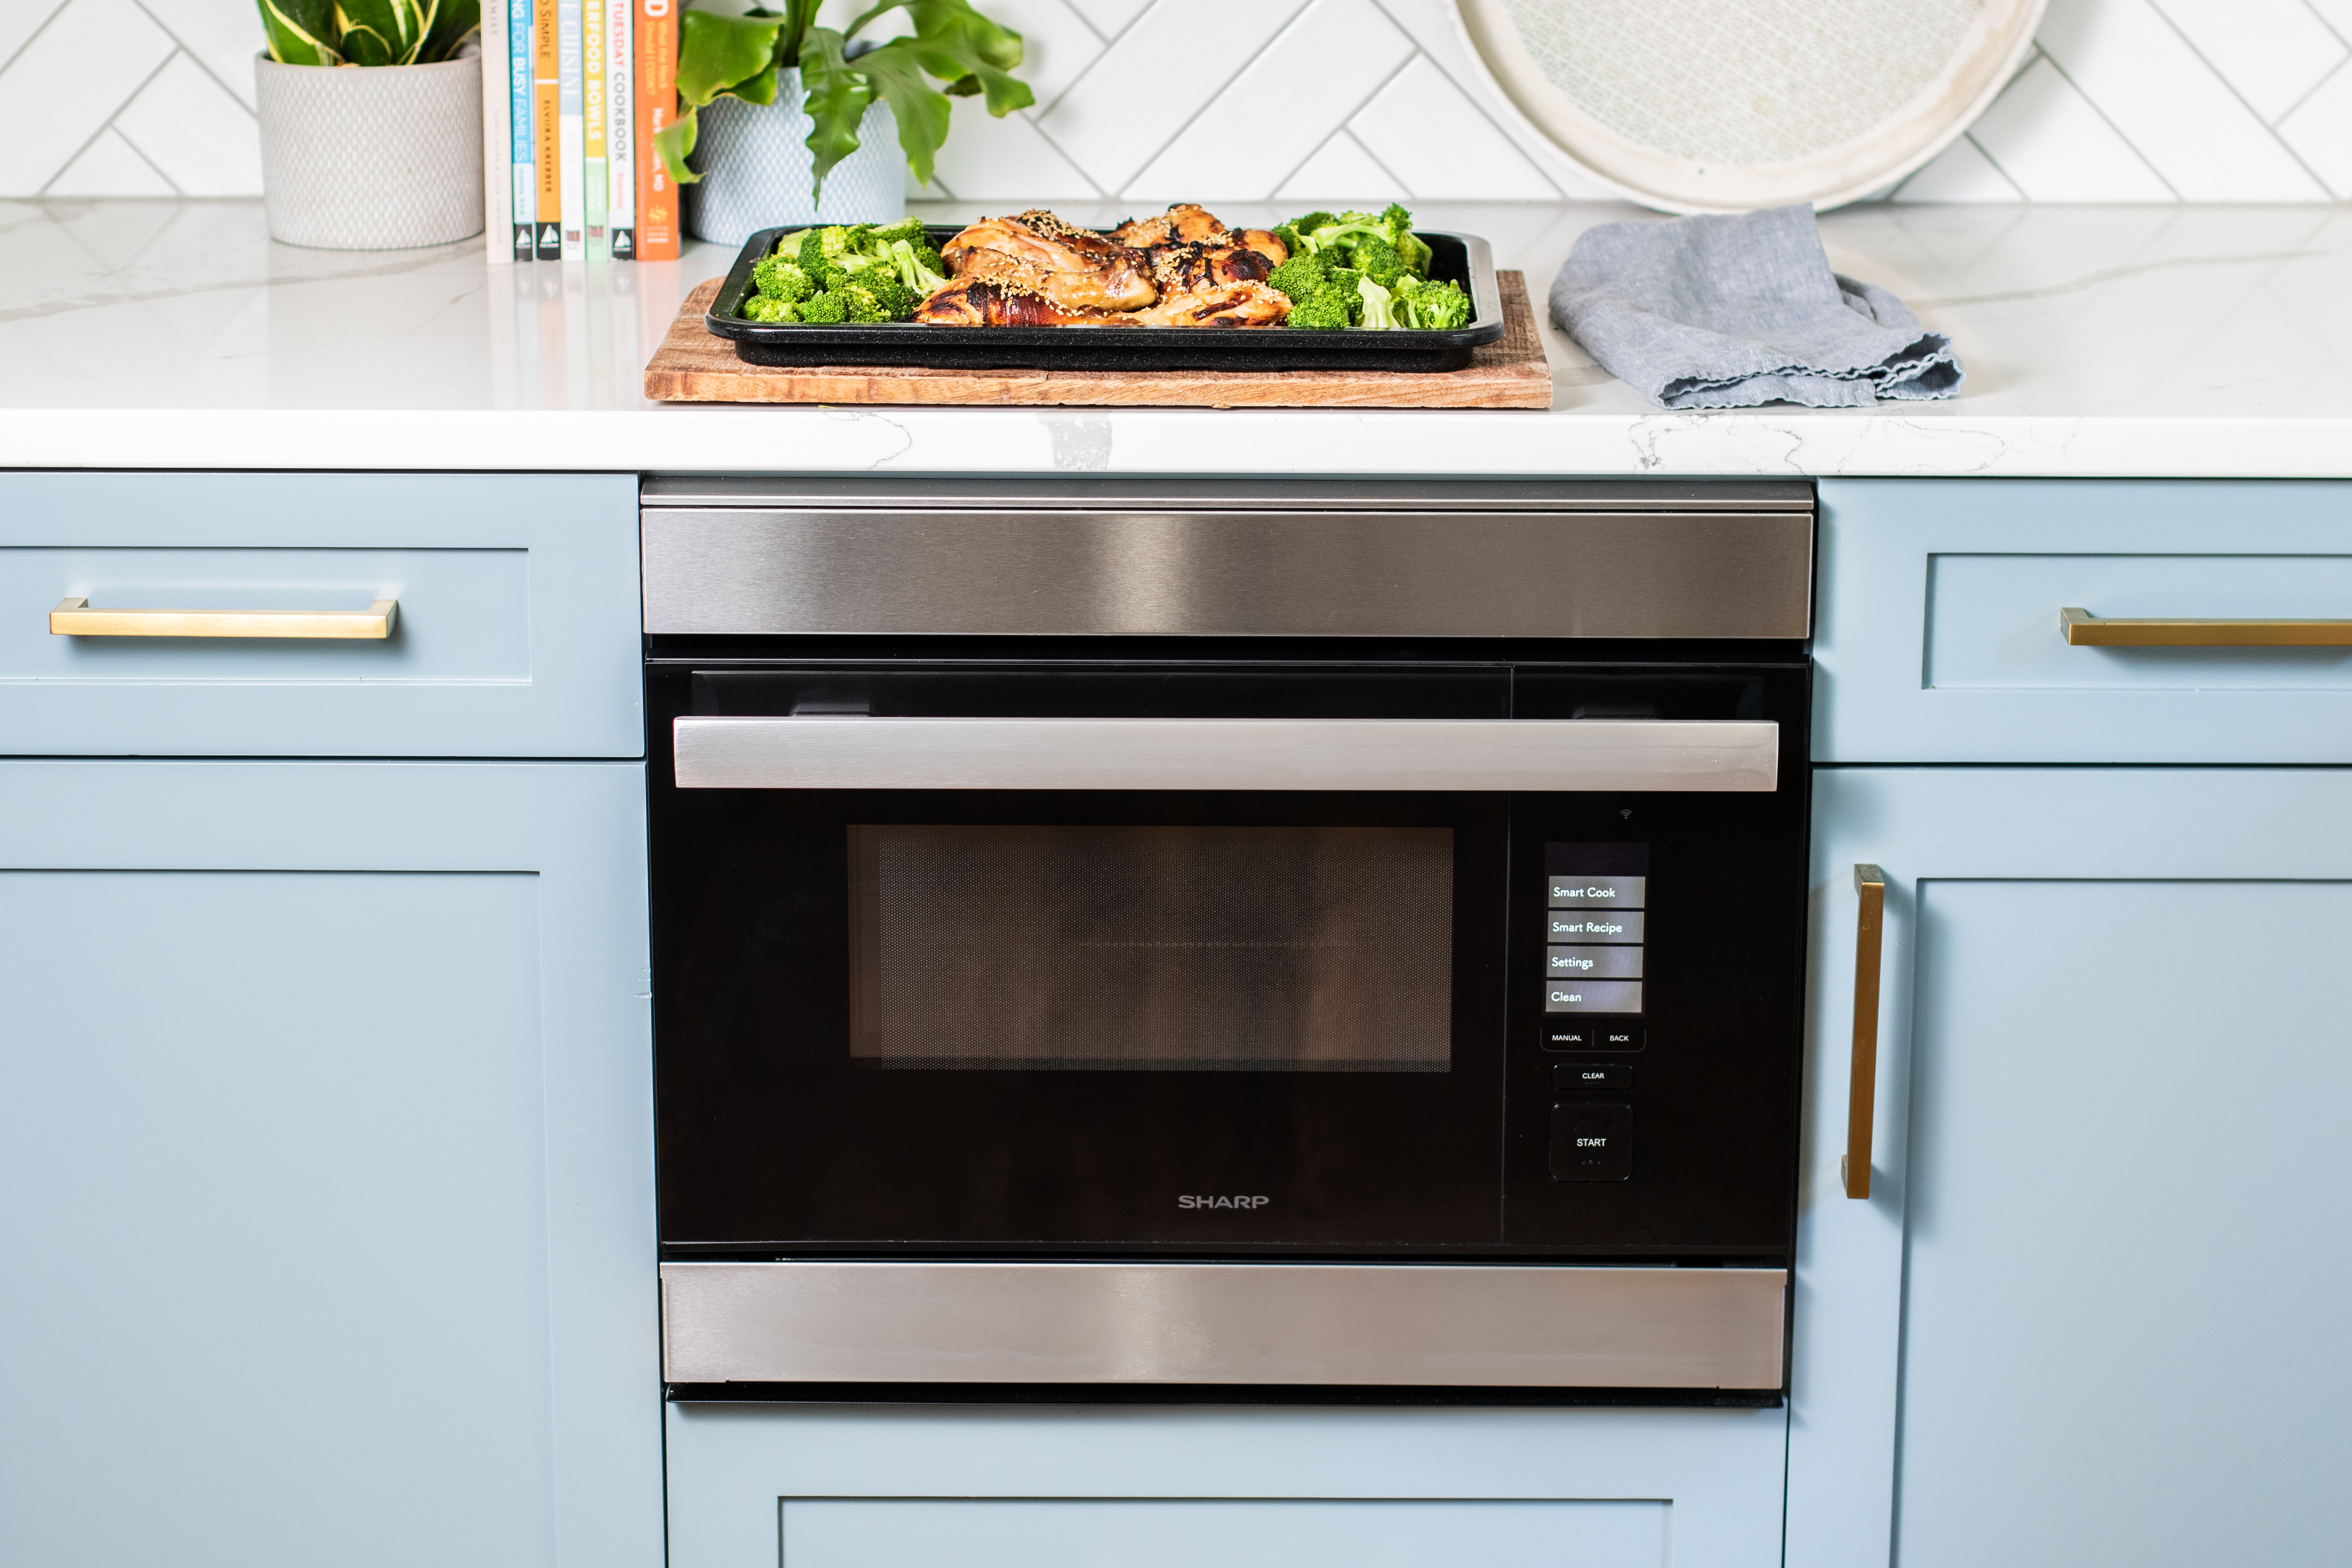 The Sharp SuperSteam+ Built-In Wall Oven (SSC2489DS)